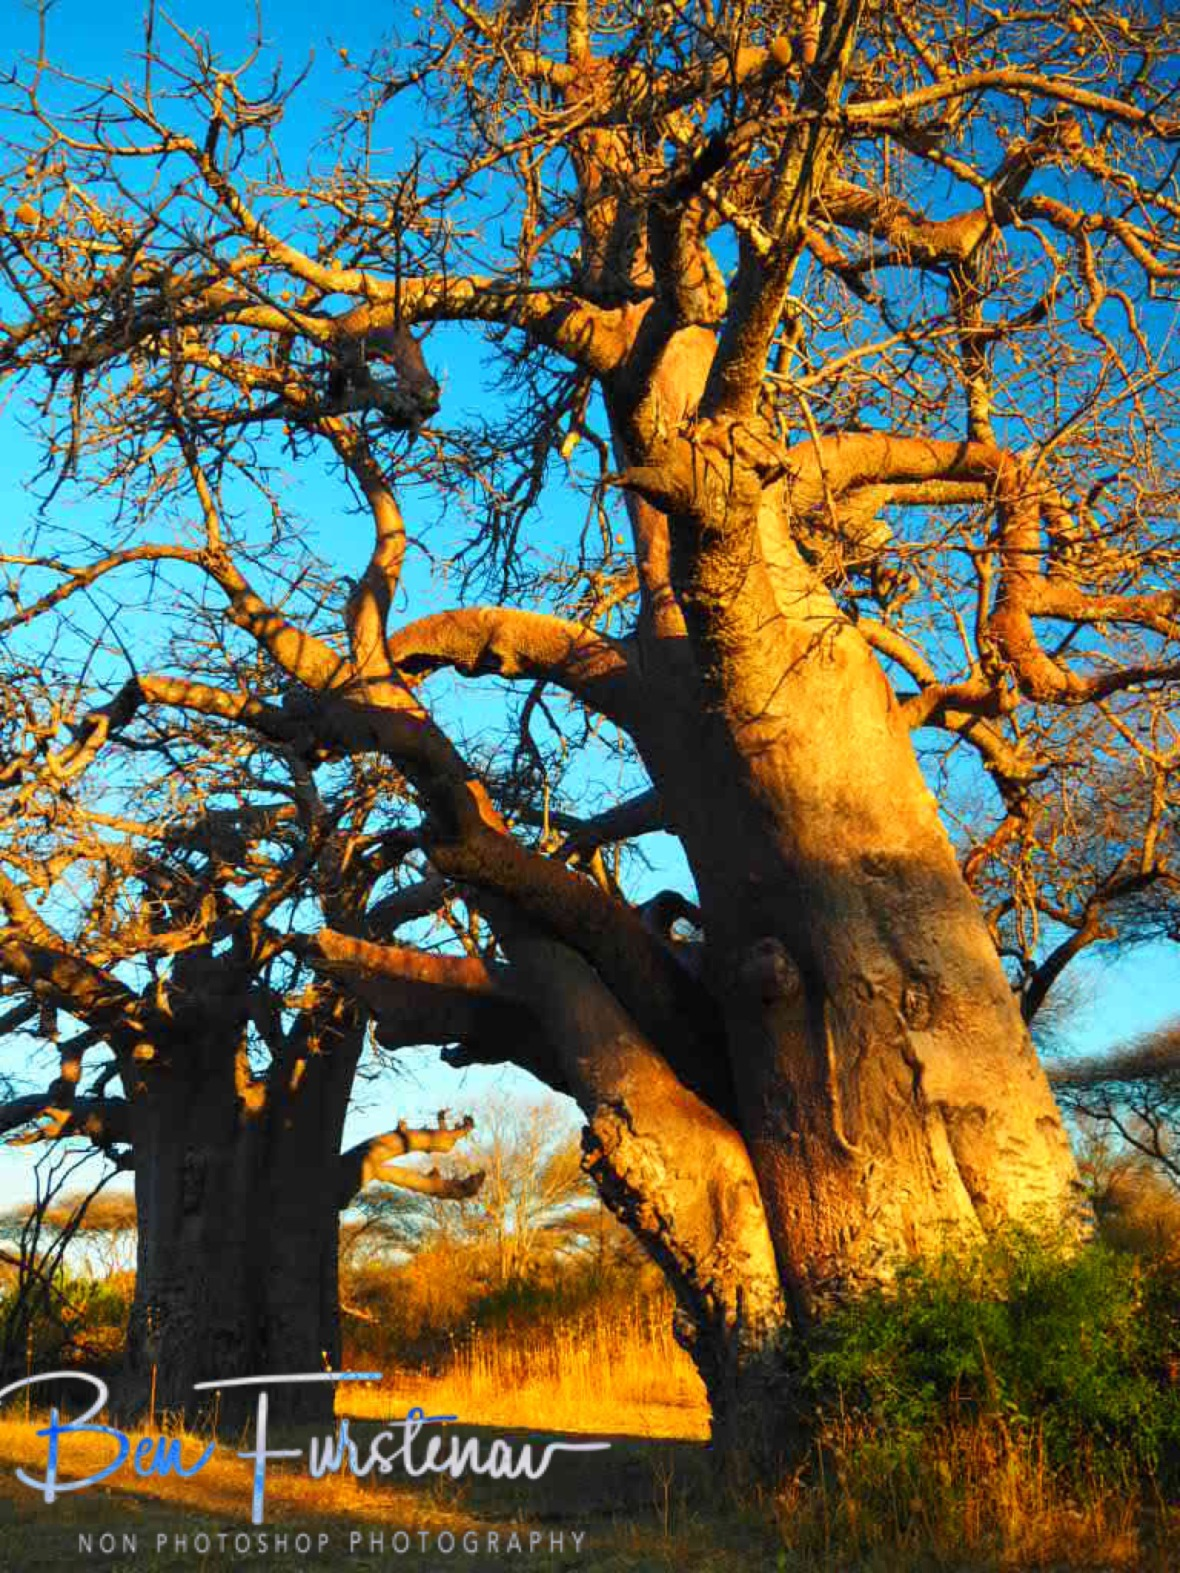 Baobab country, Chobe National Park, Botswana